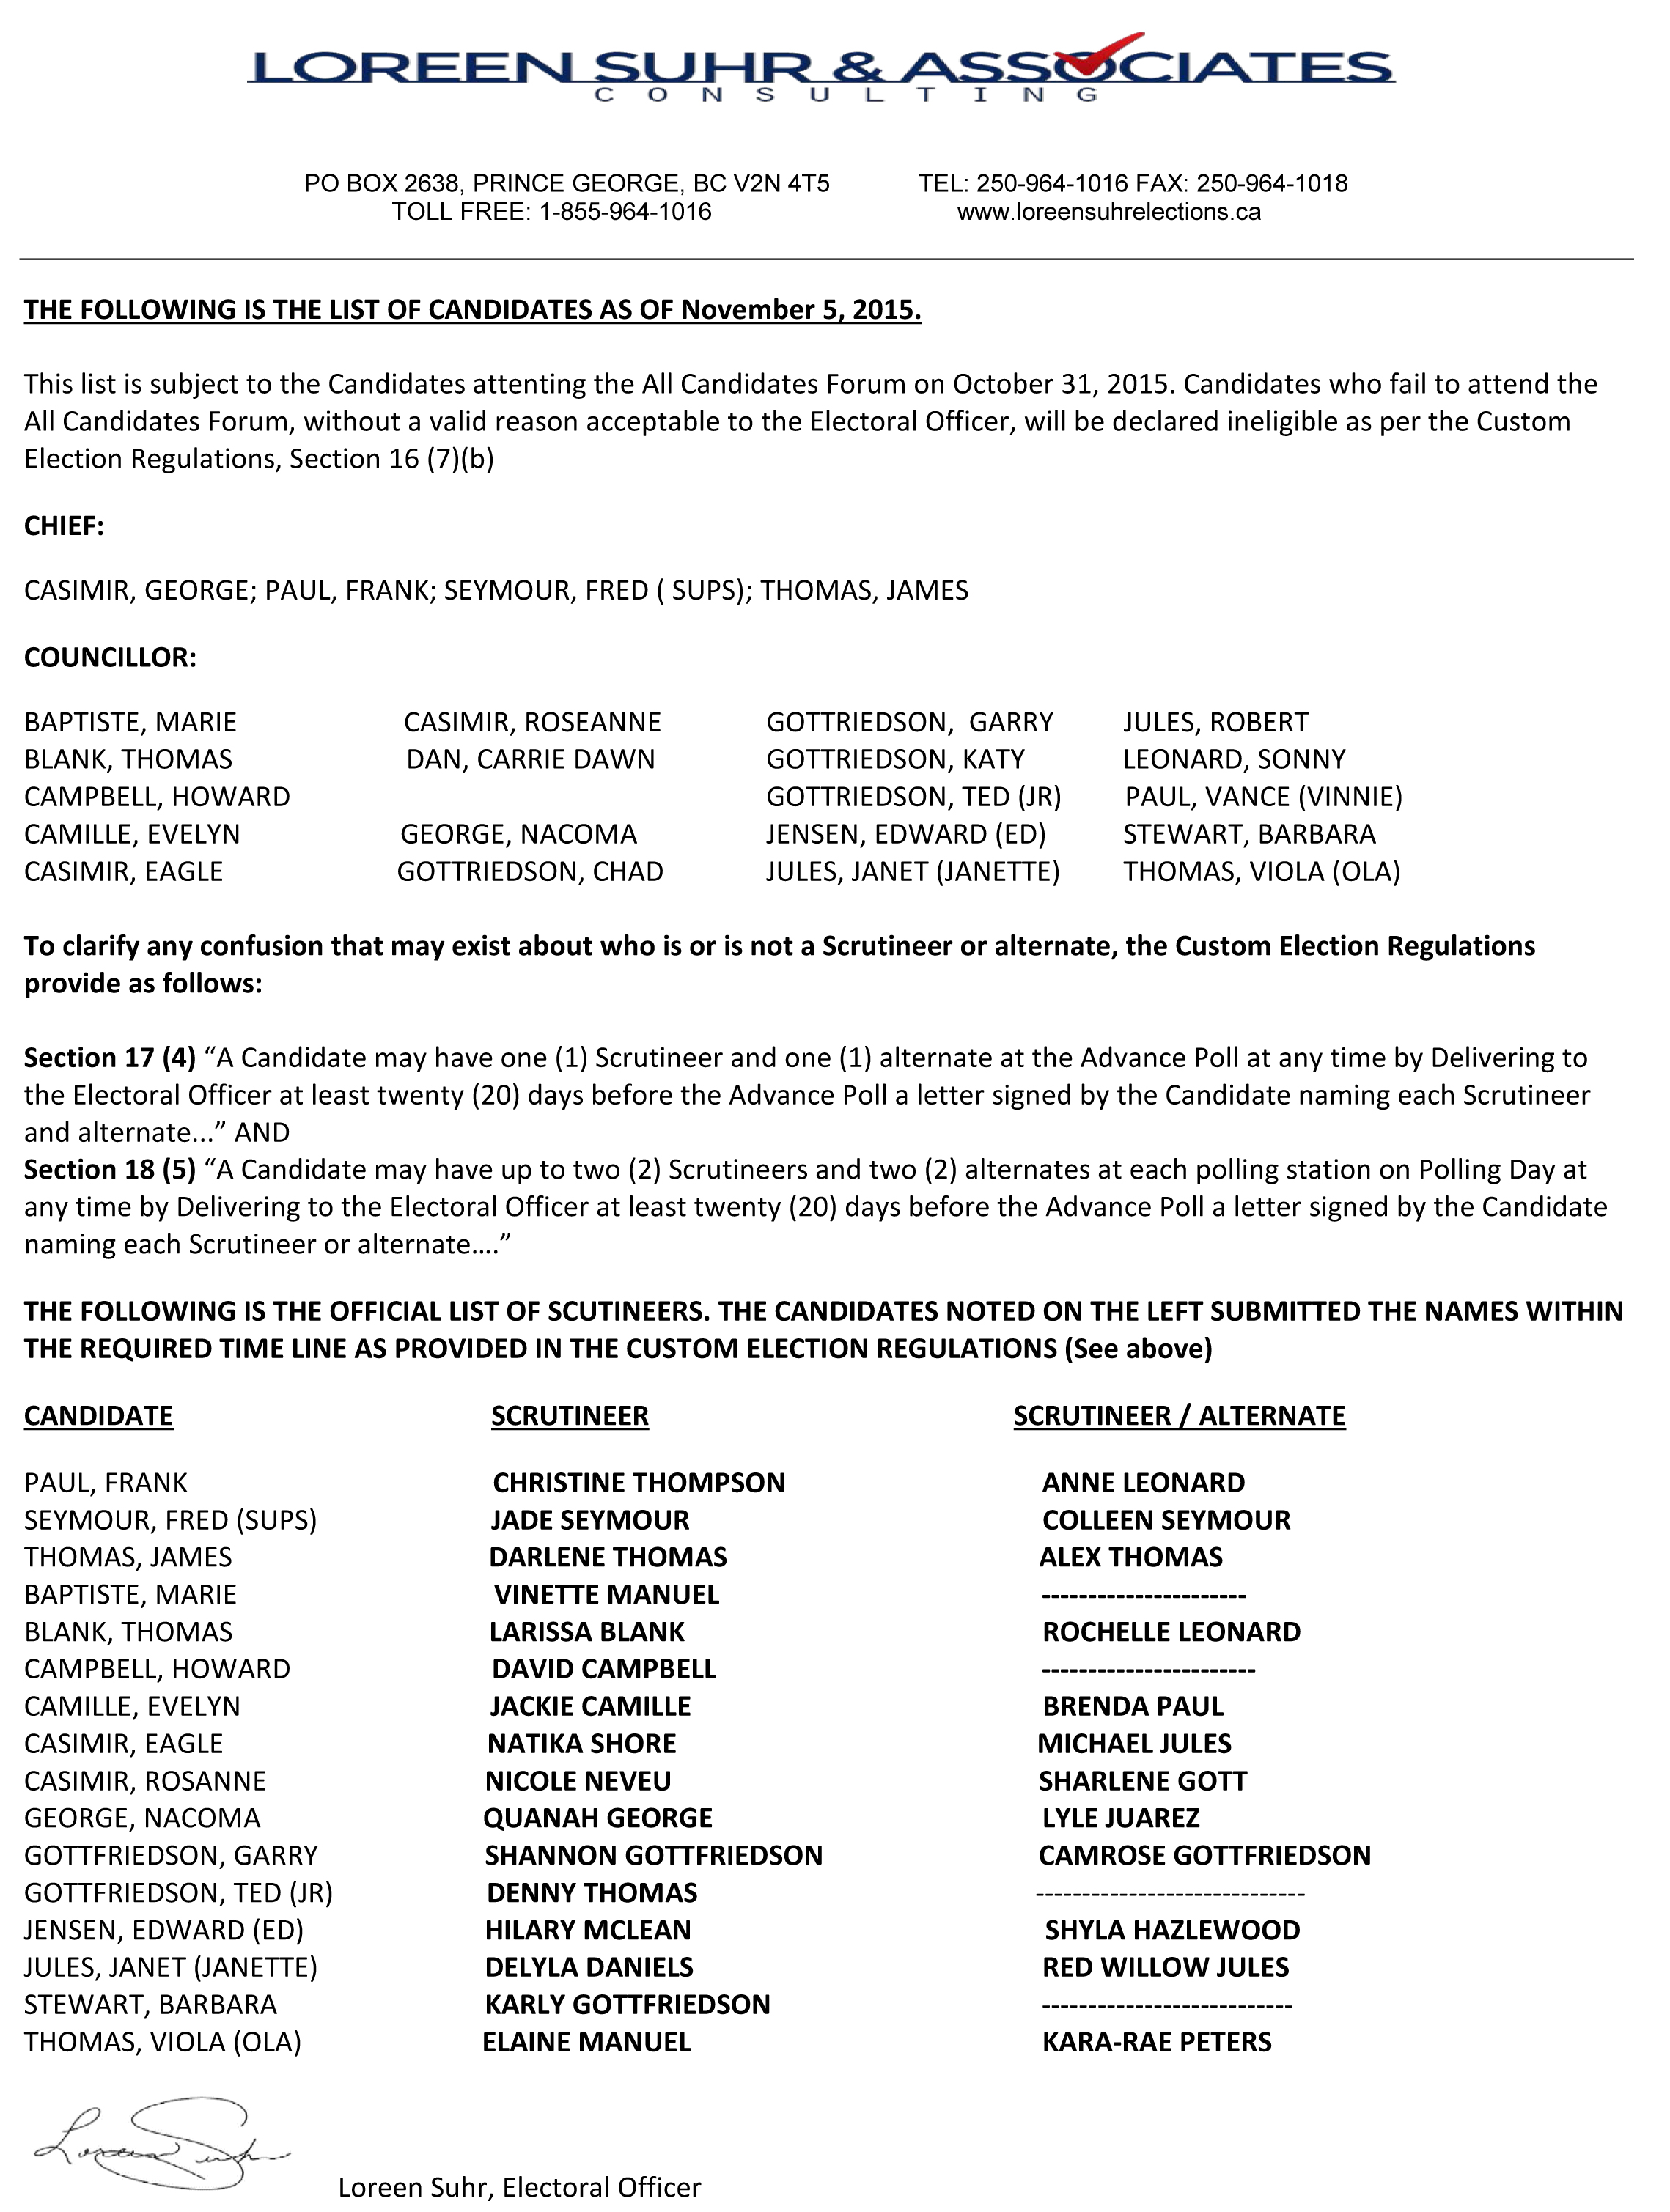 Nov-5-15---Official-List-of-Candidates-and-Scrutineers[1]